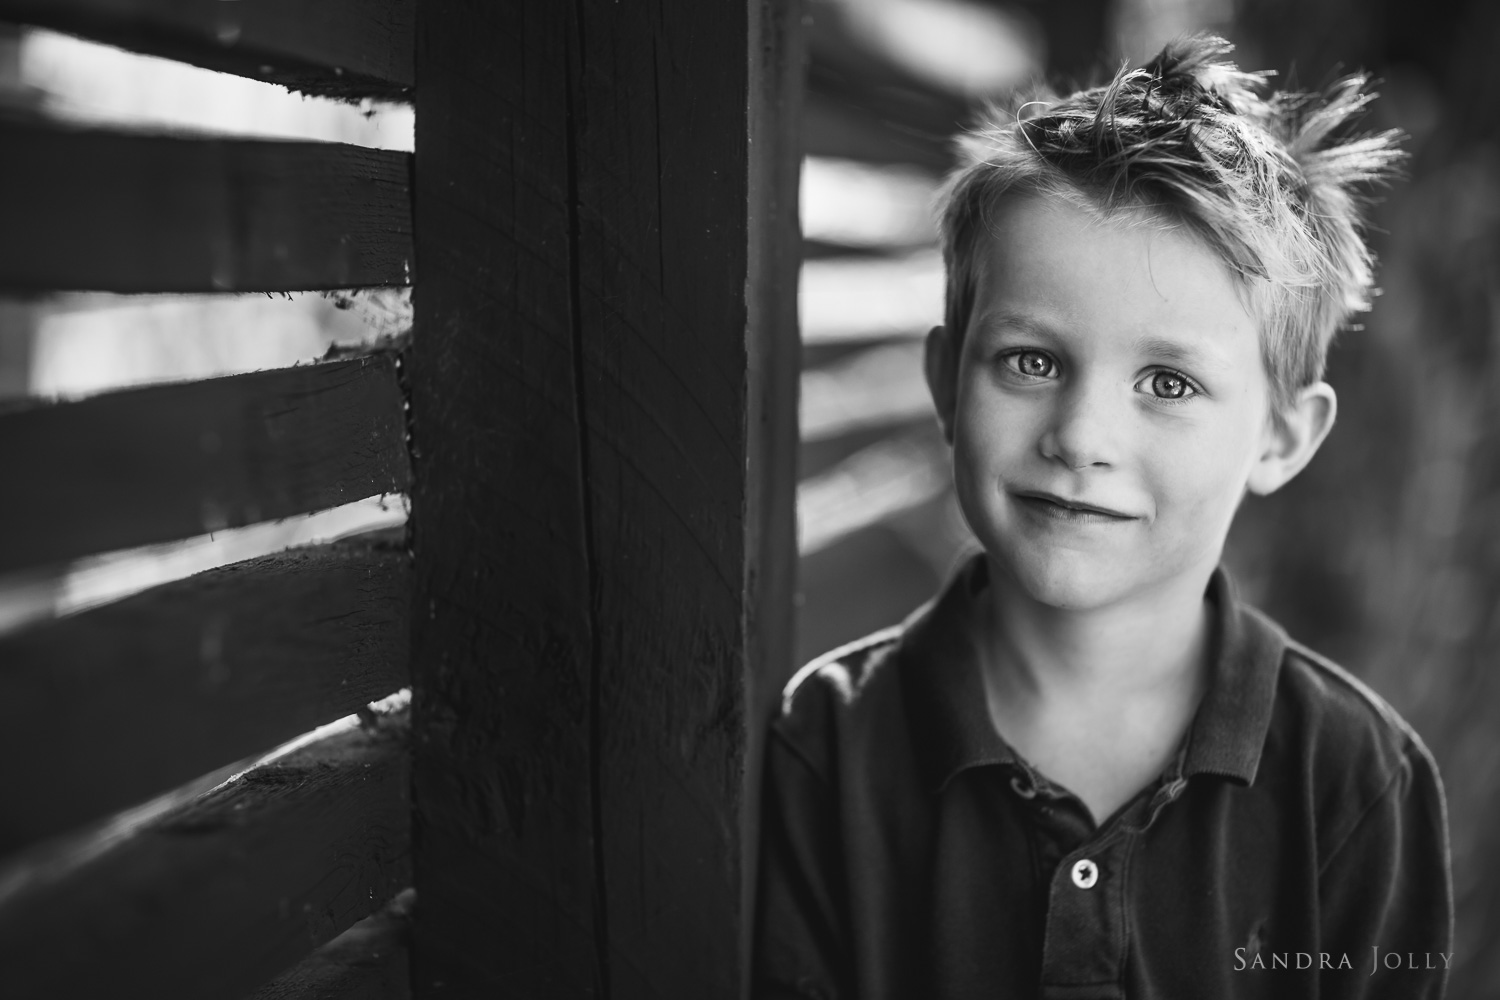 black-and-white-photo-of-a-boy-by-barnfotograf-sandra-jolly.jpg